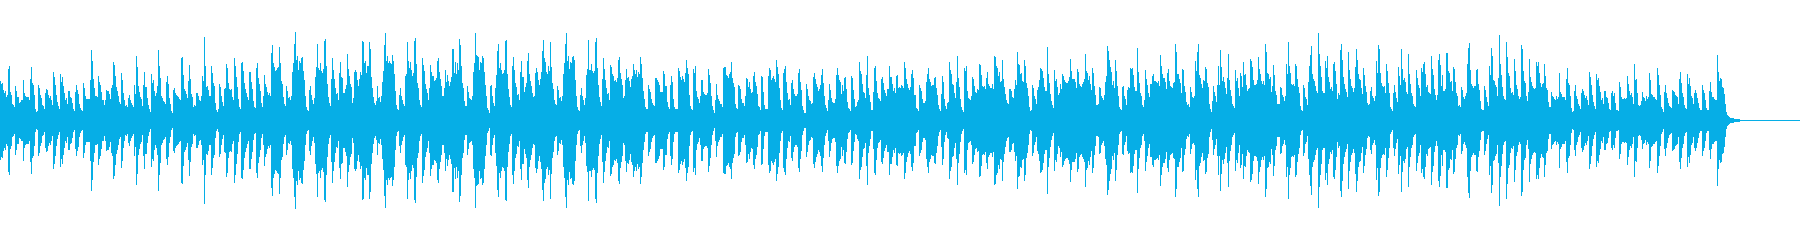 A play accompaniment that can be used for interesting sadness's reproduced waveform